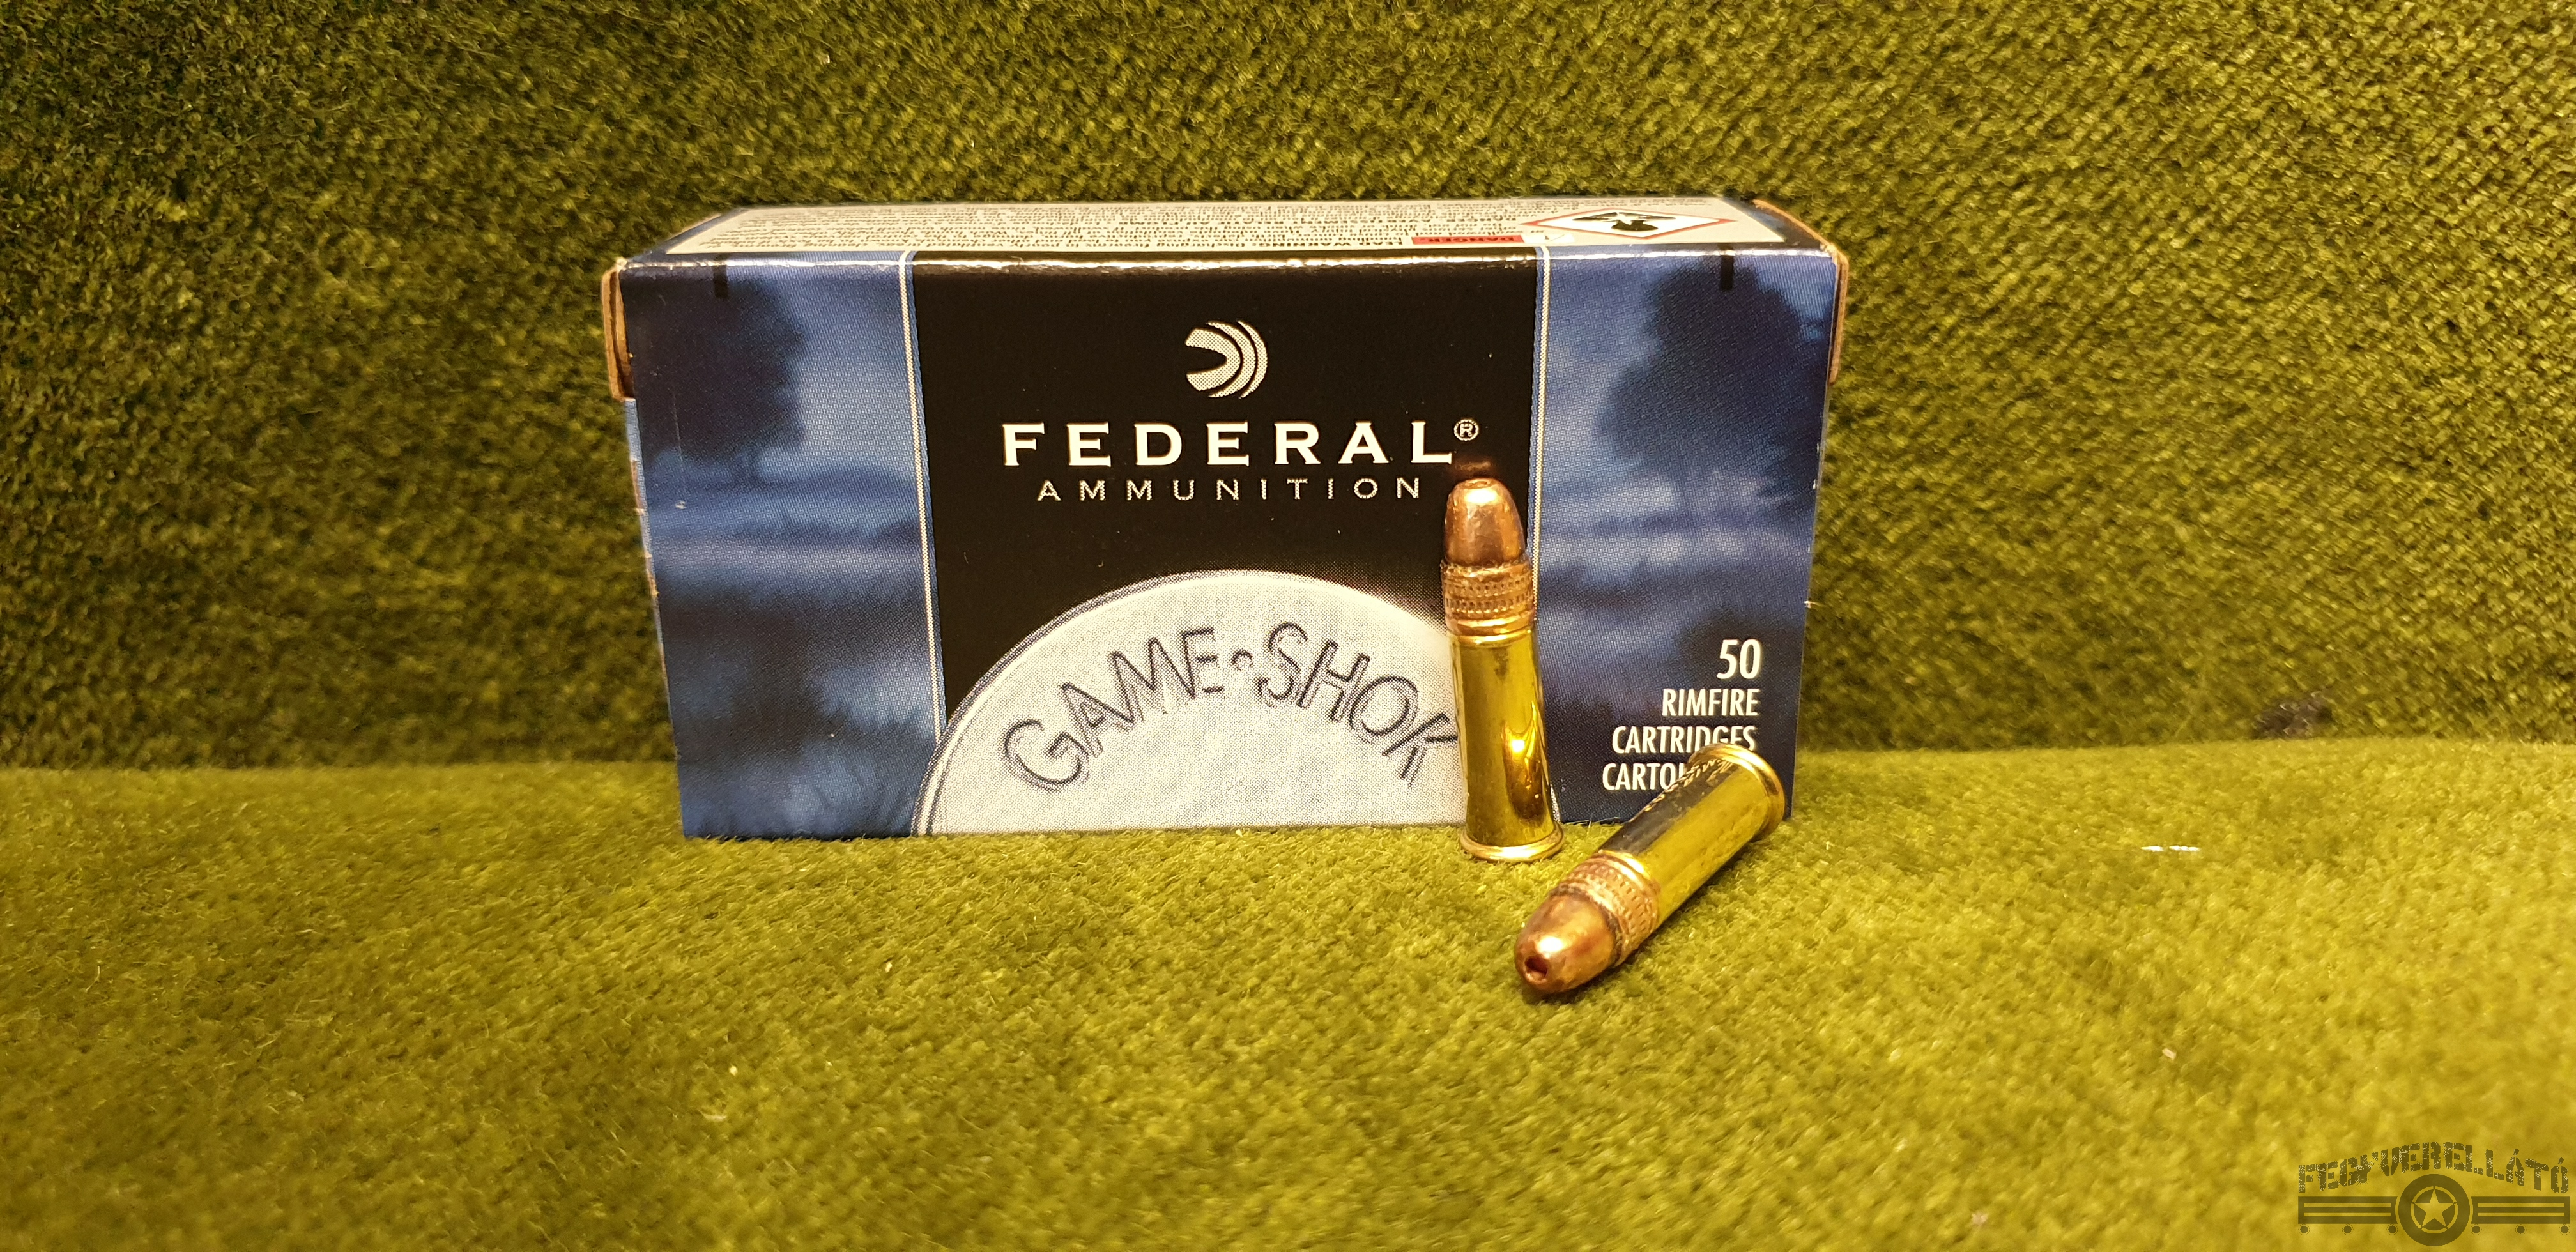 Federal, 0.22 Long Rifle, GameShok, 38gr